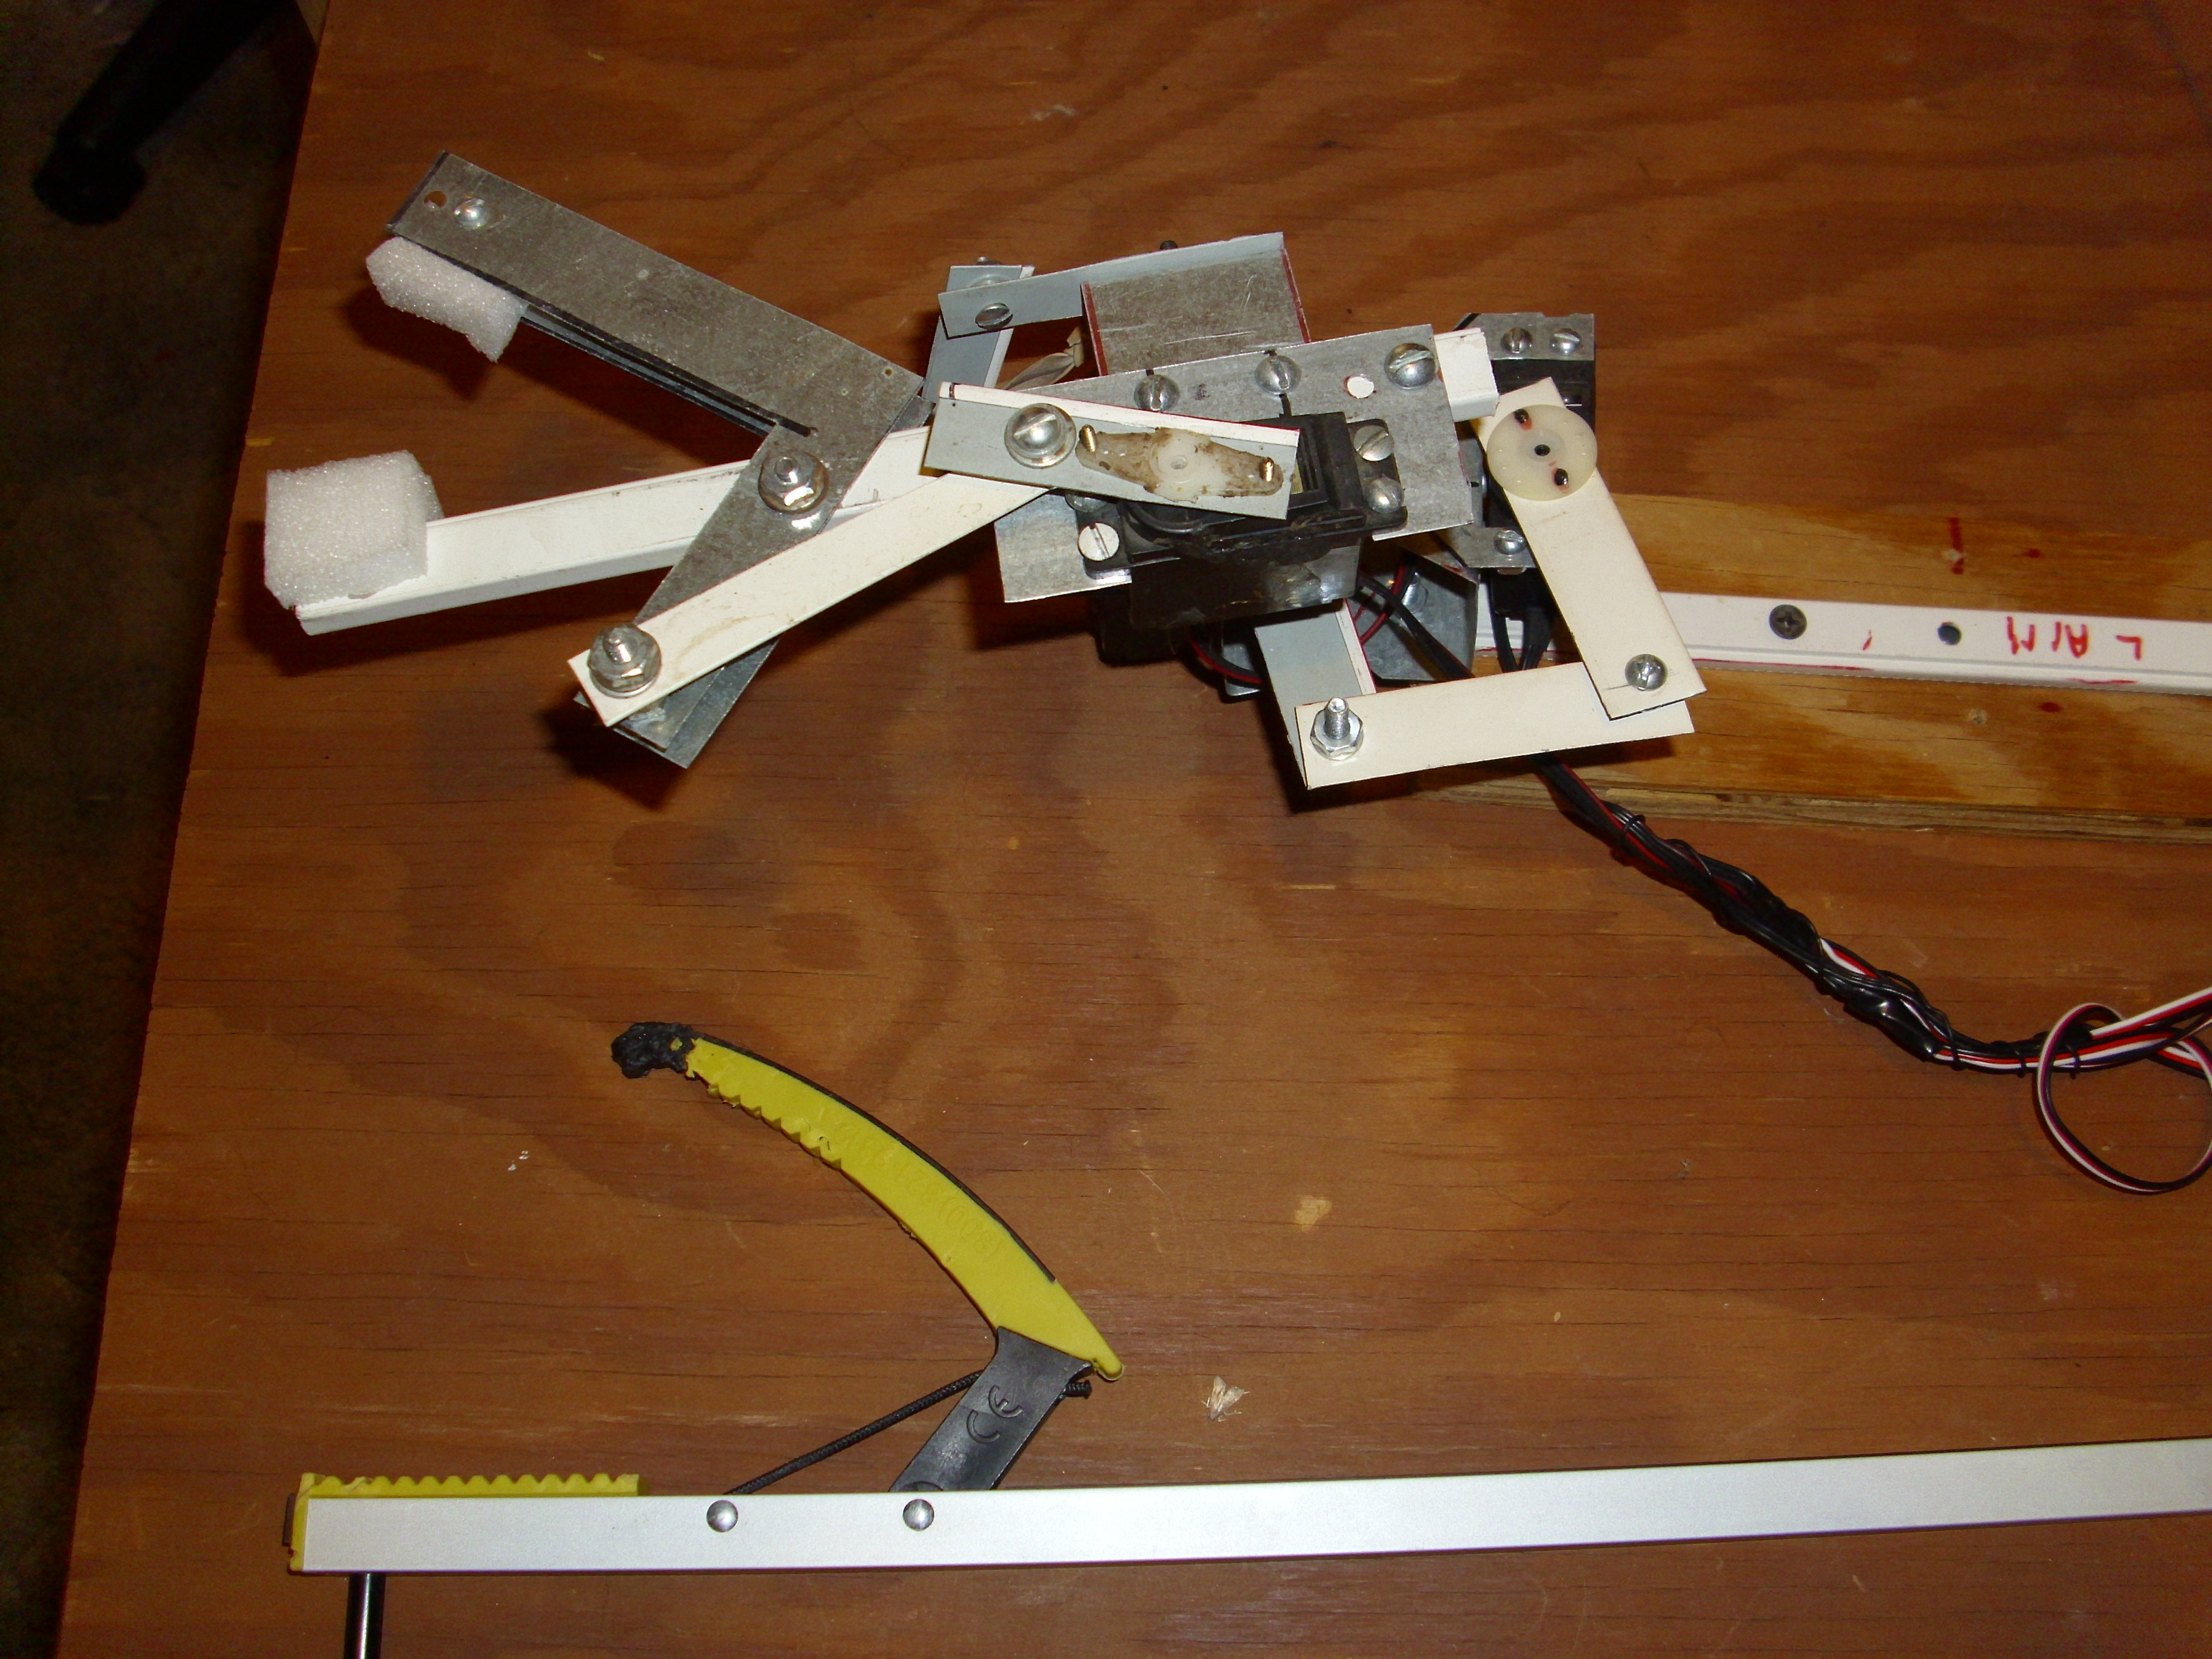 Picture of Bend Metal to Construct Servo & Motor Brackets, for Robotics